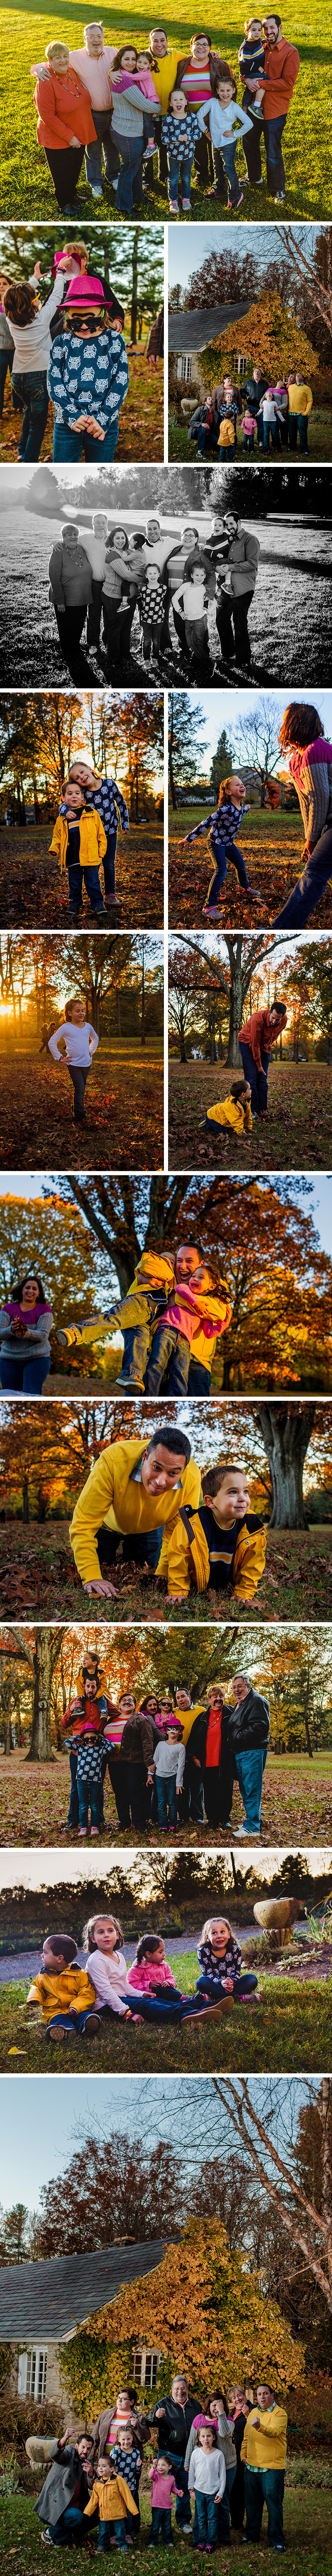 Family Session with the Zipkins in Colonial Park in Franklin Township, New Jersey